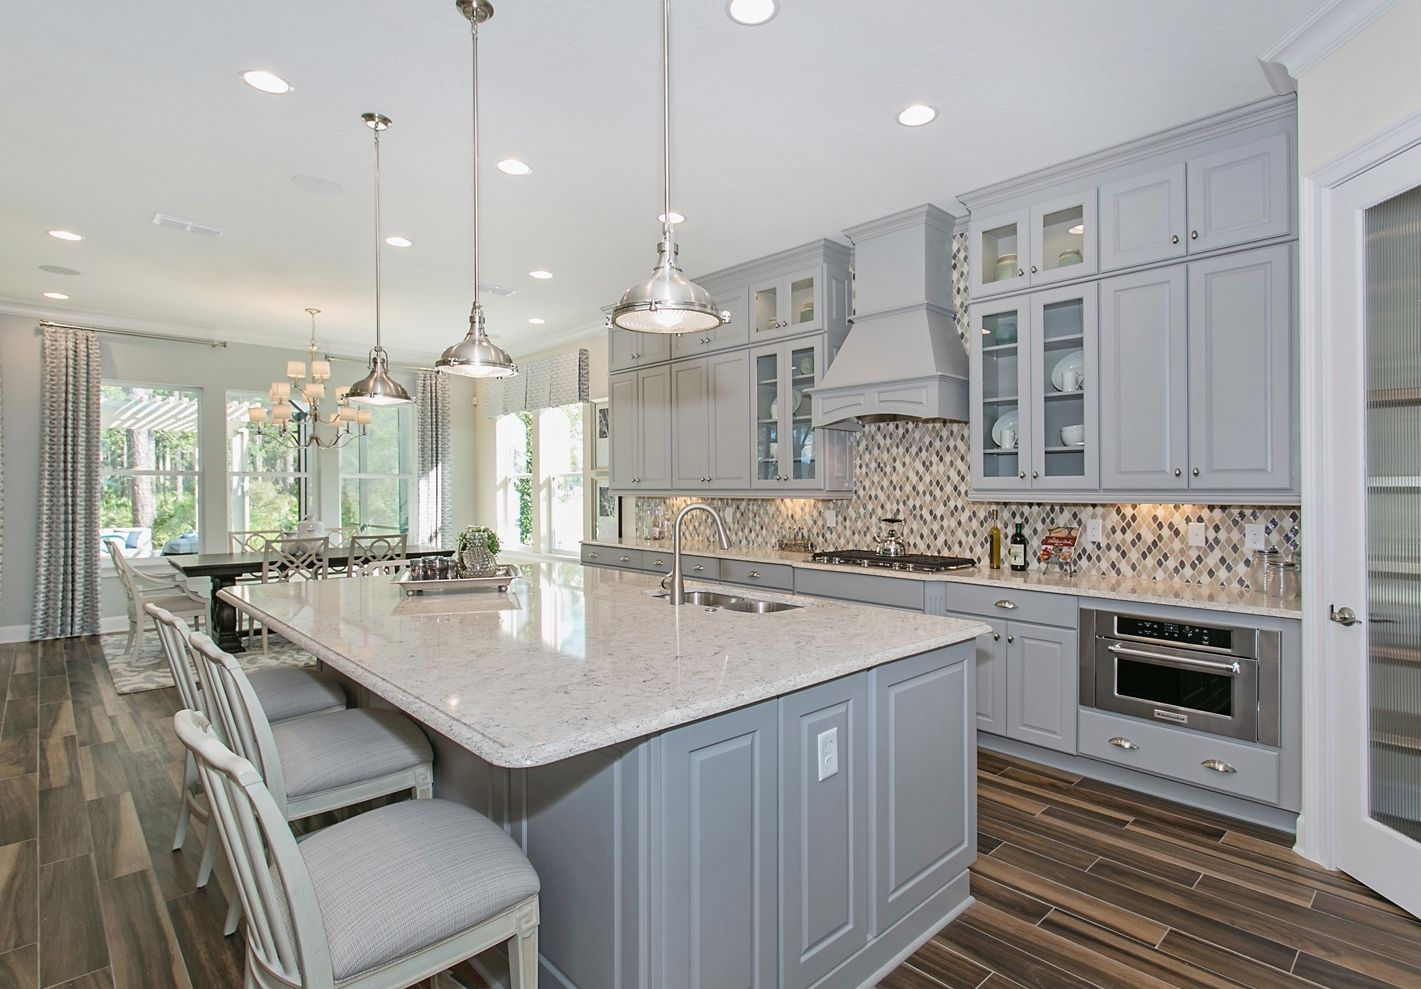 Calatlantic homes in twenty mile village grove kitchen award winning model homes of nocatee Kitchen design for village